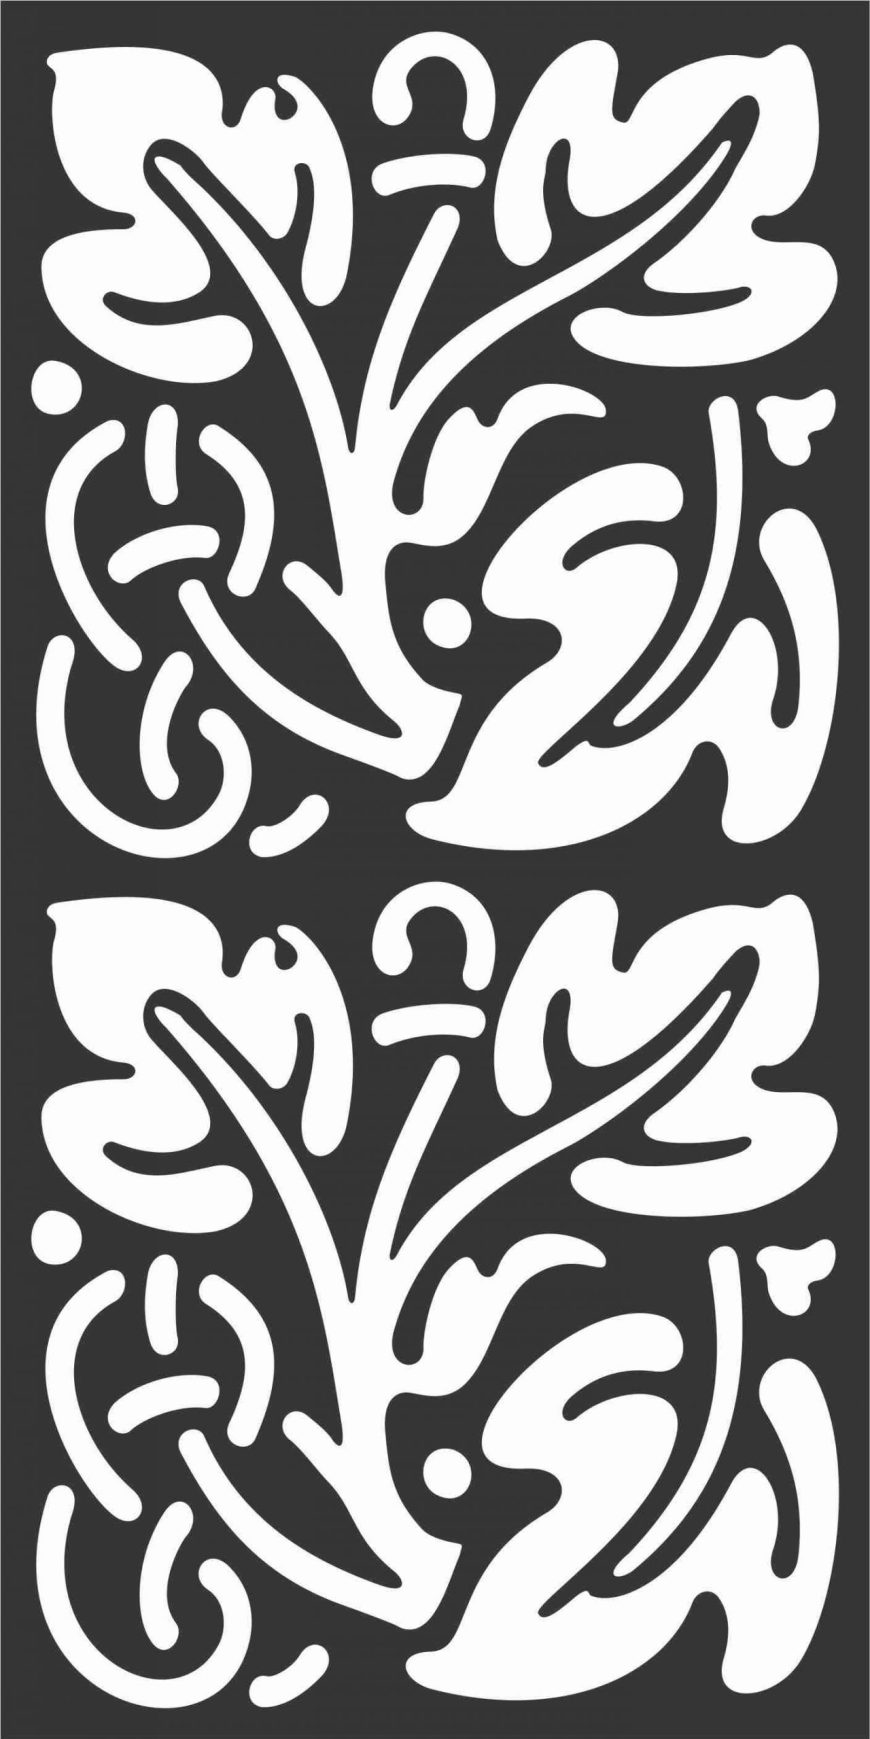 Decorative Screen Patterns For Laser Cutting 65 Free DXF File